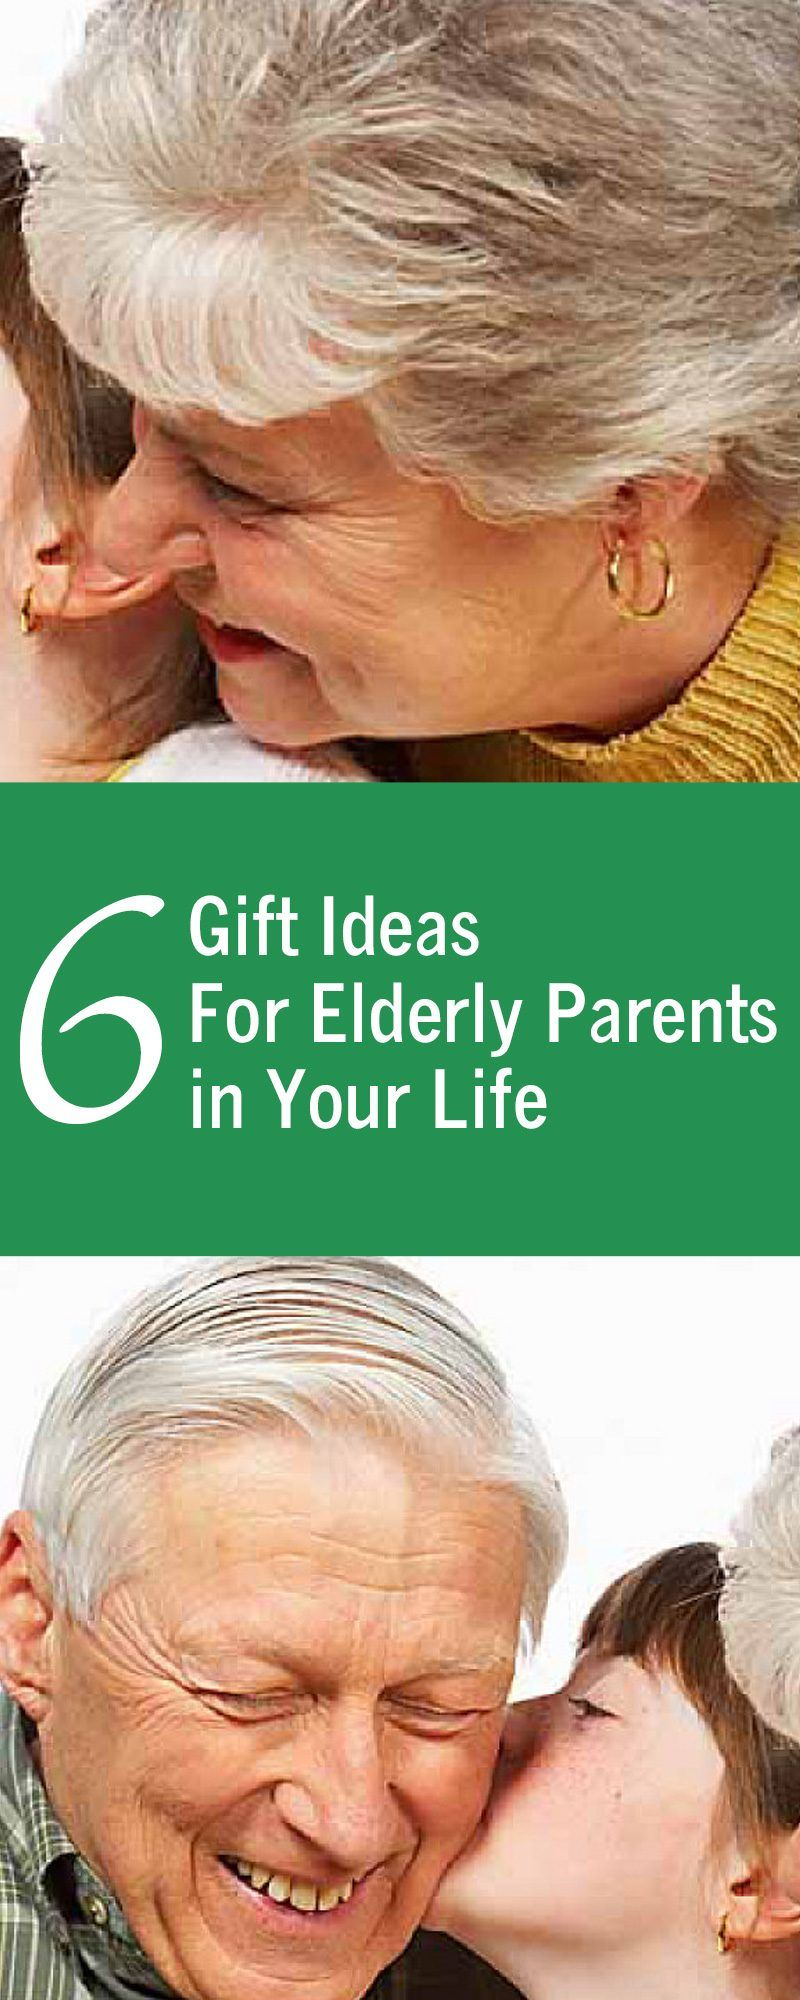 6 gift ideas for elderly parents in your life for Valentineu0027s Day and Easter  sc 1 st  Pinterest & The Best Gift Ideas For Elderly Parents | DIY Gift Ideas and DIY ...